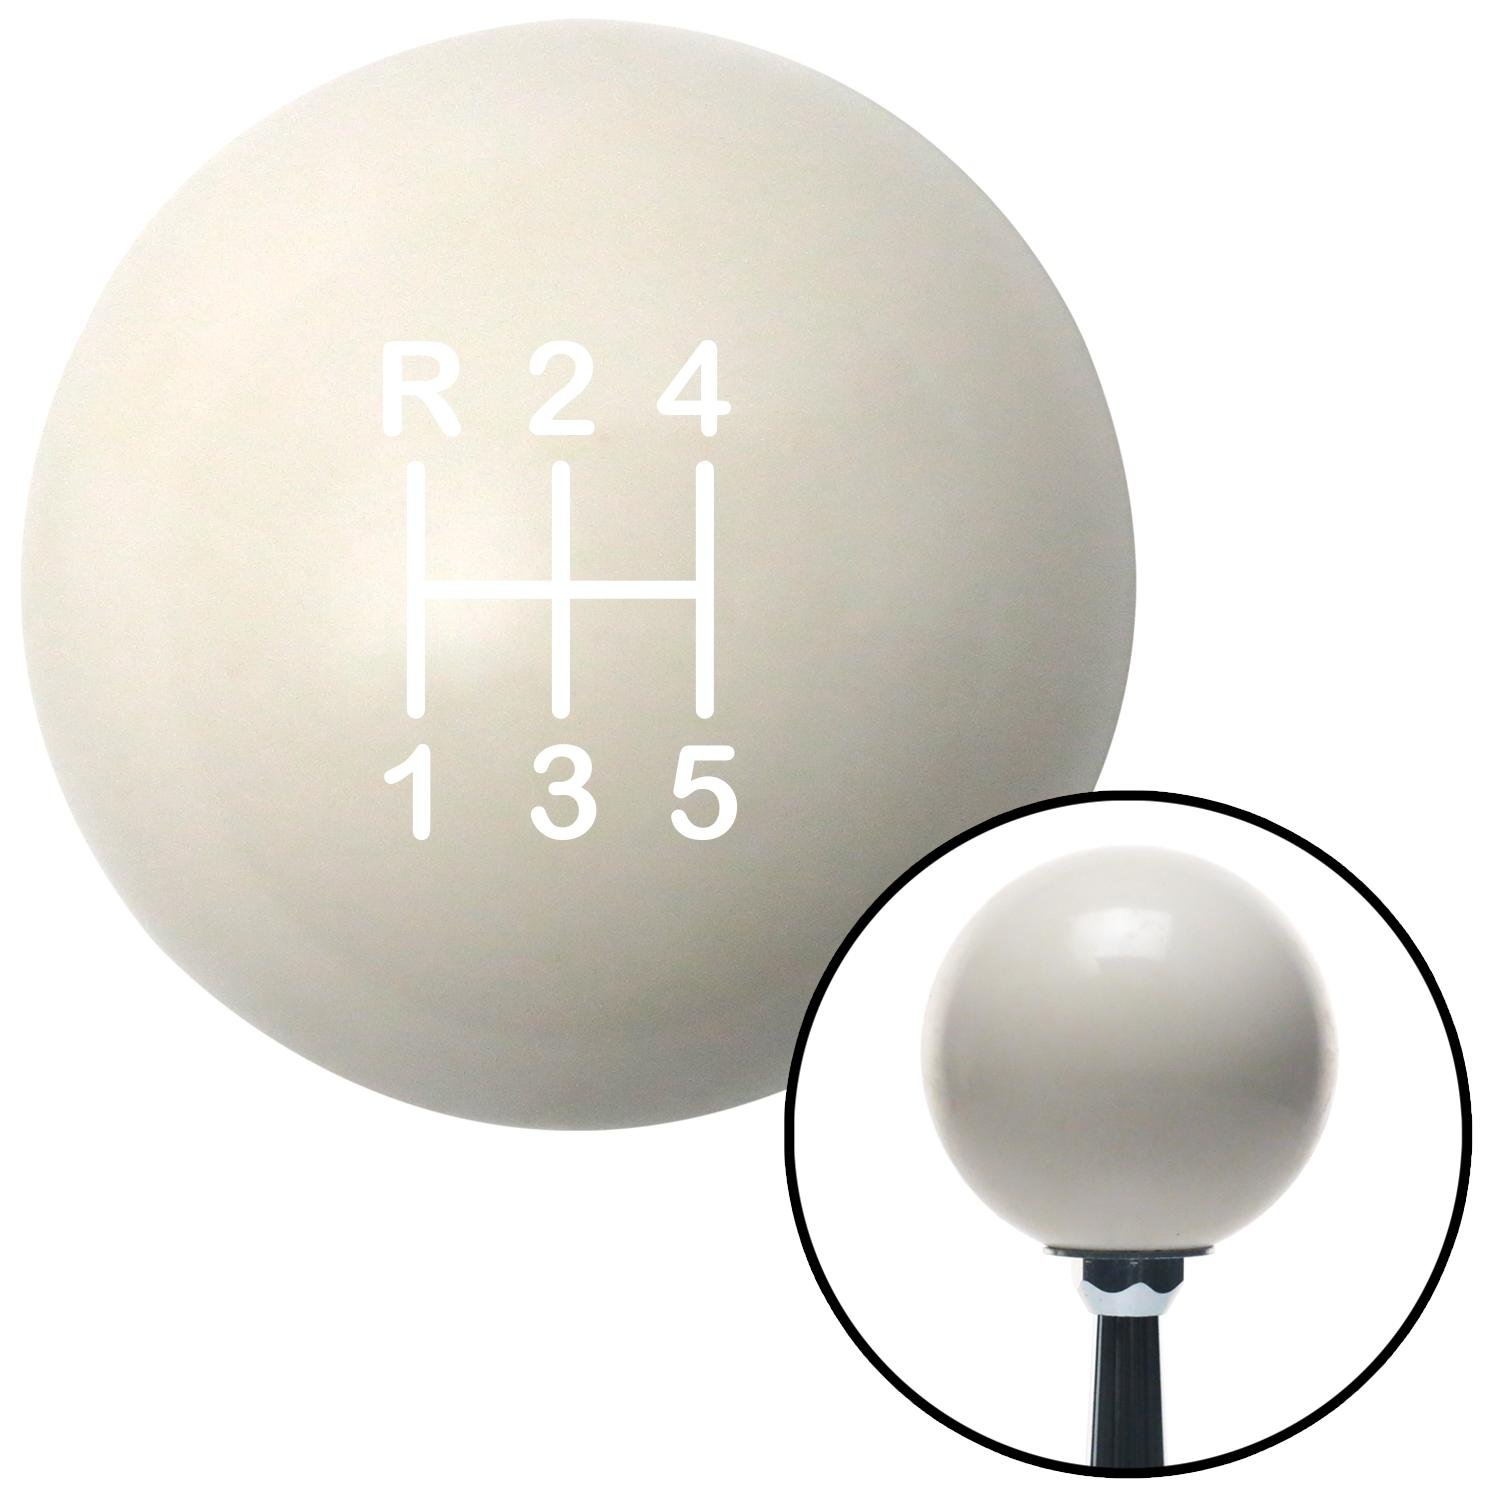 American Shifter 76654 Ivory Shift Knob with M16 x 1.5 Insert White Shift Pattern 45n